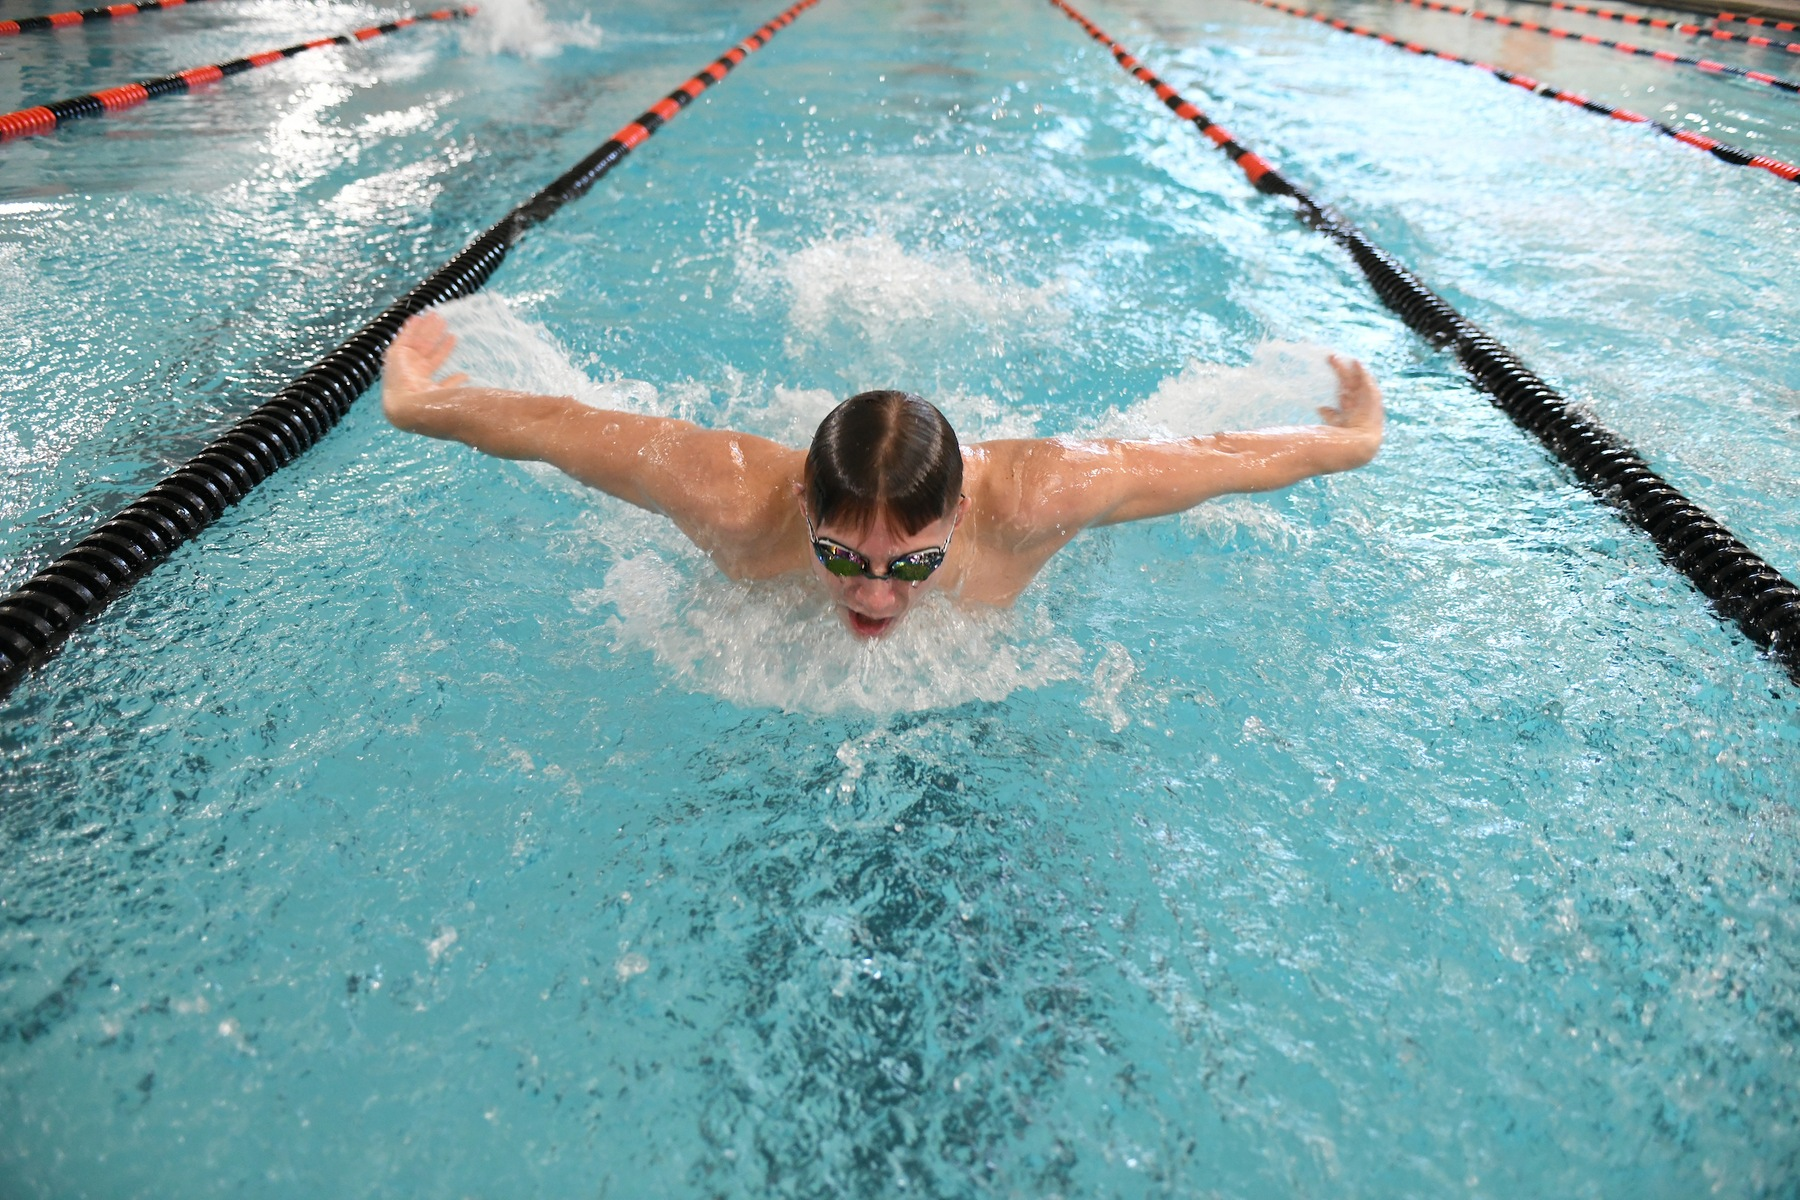 Cather Places 10th in 100 Butterfly at MAC Championships